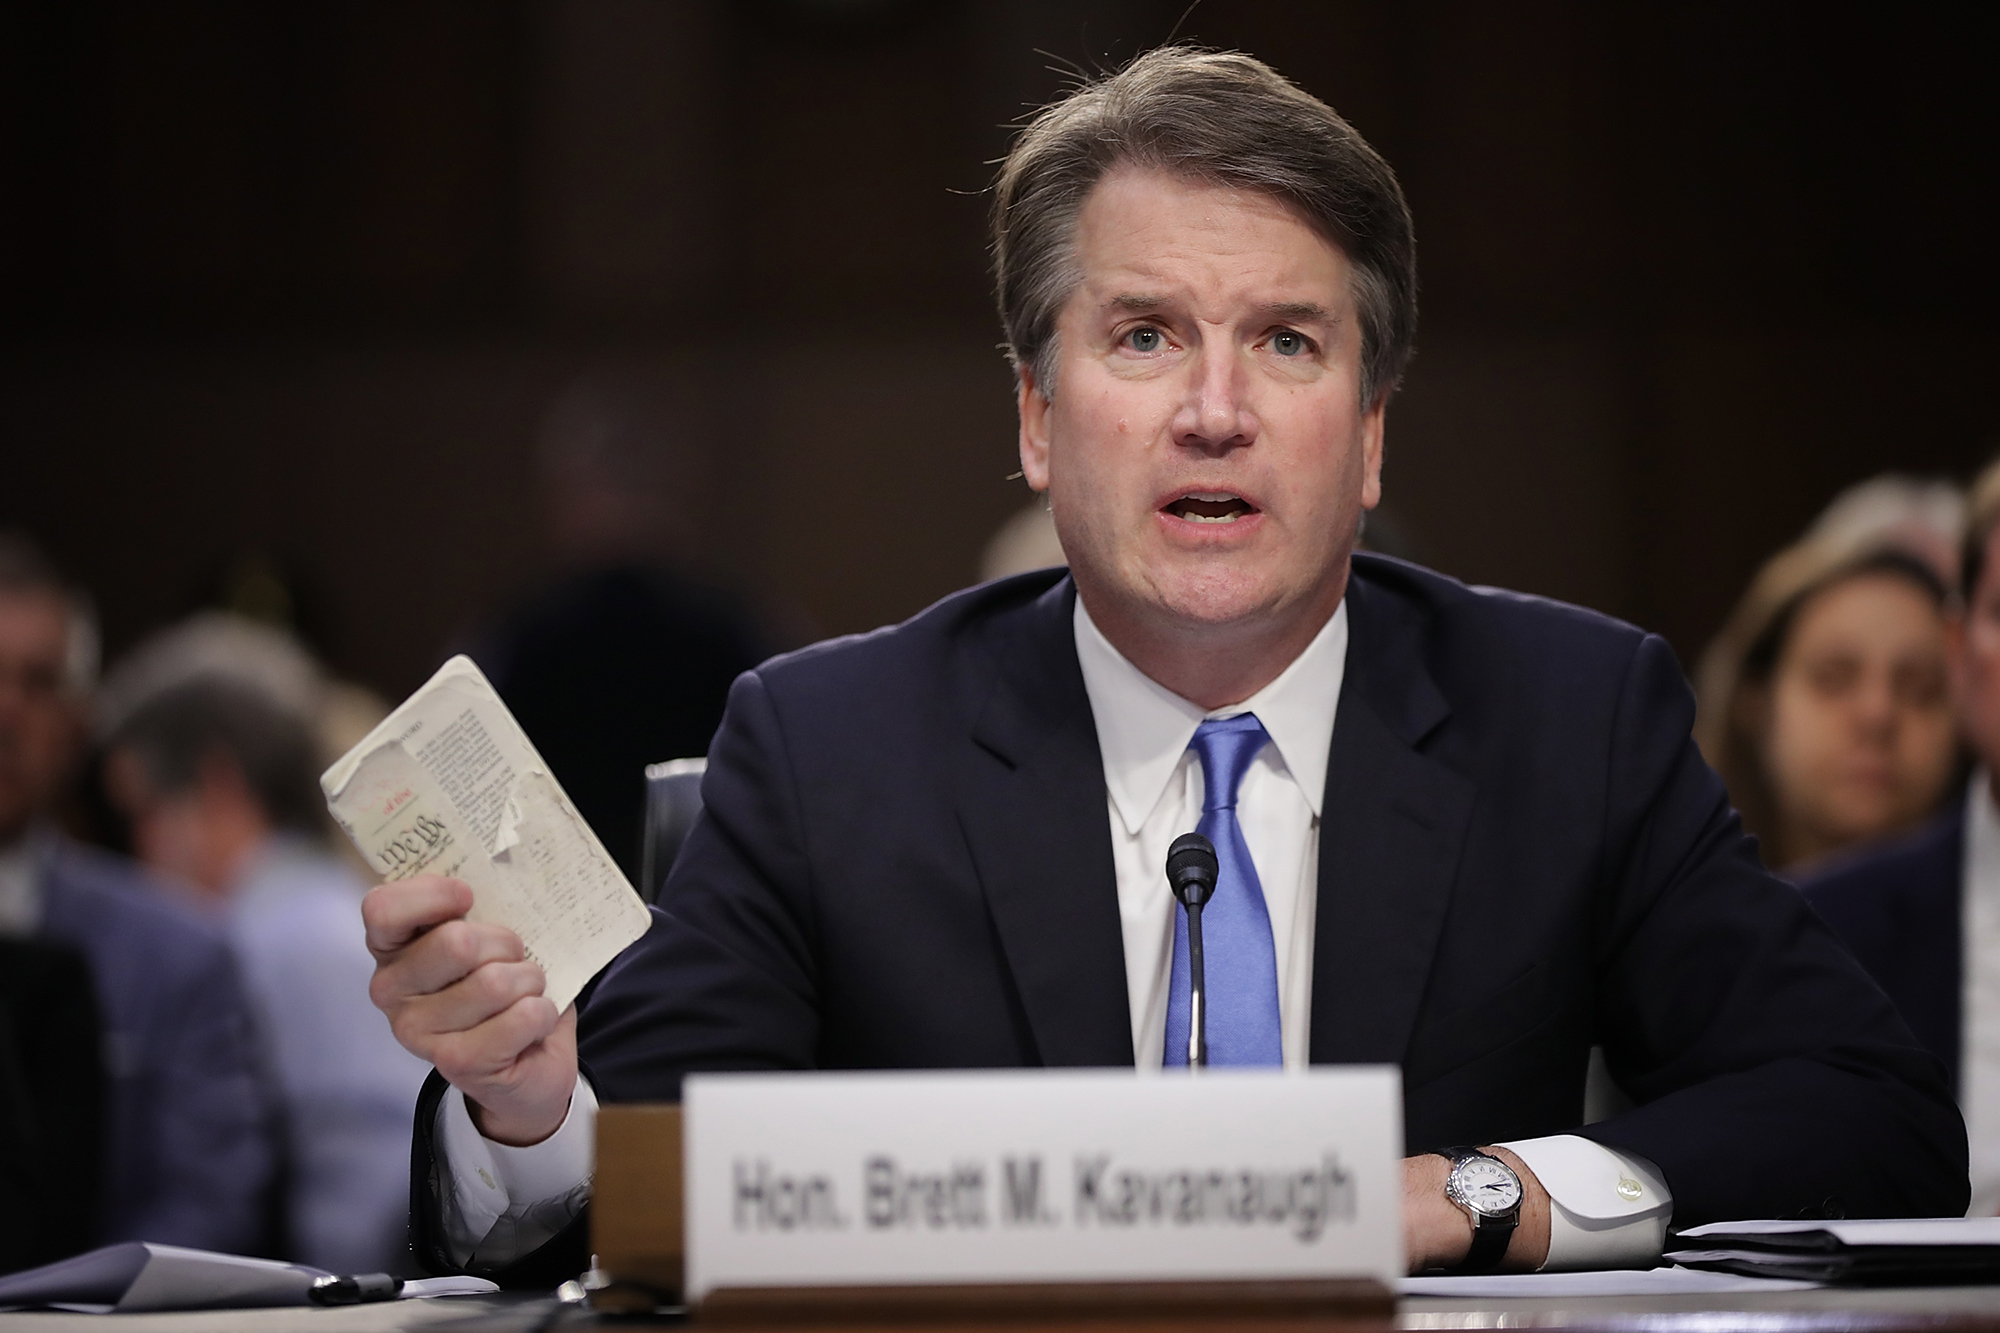 Brett Kavanaugh Confirmed as Supreme Court Justice After Sexual Assault Allegations